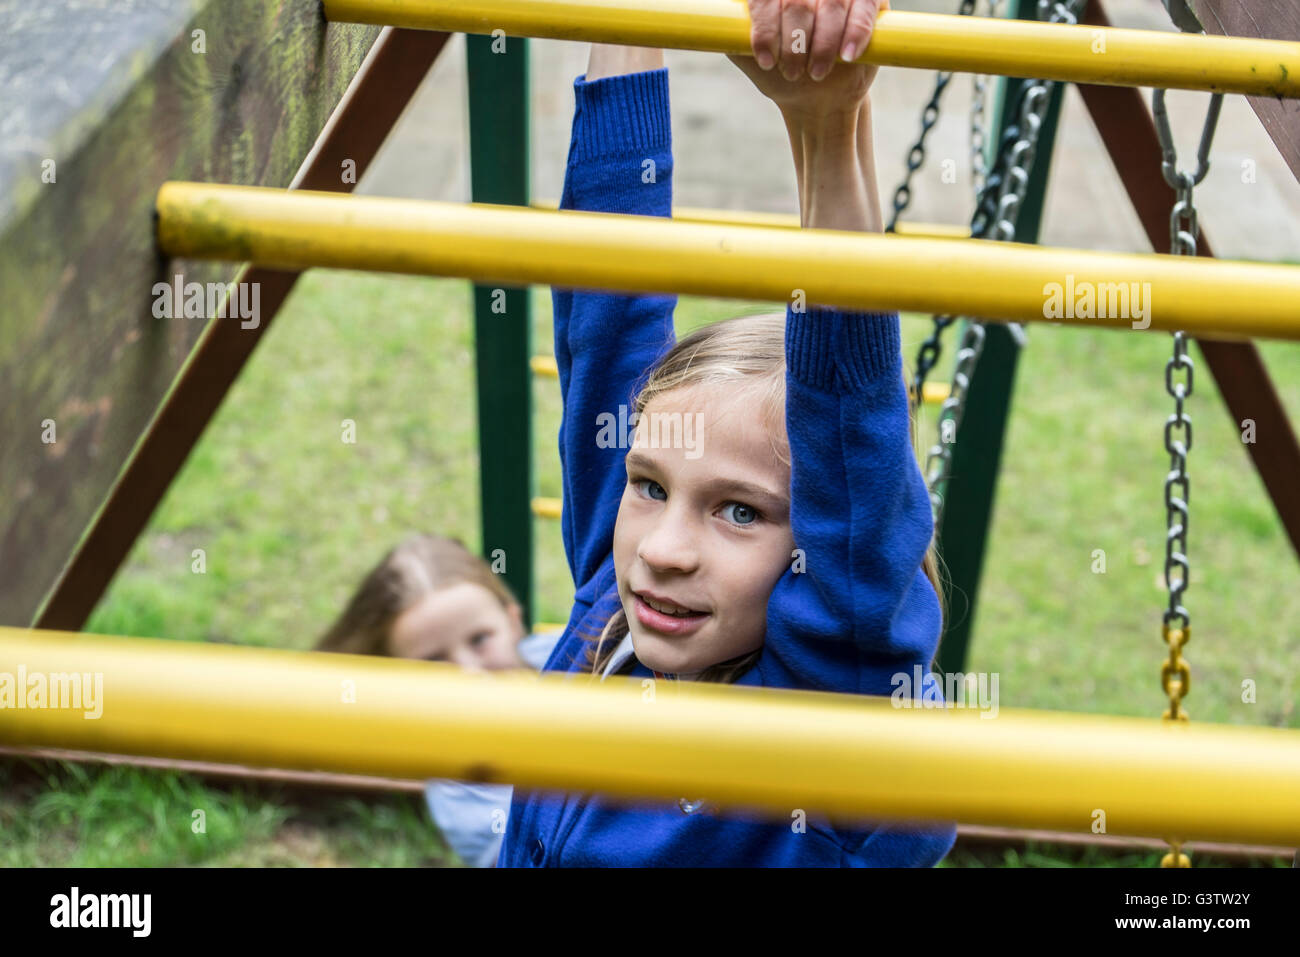 A ten year old girl in school uniform climbing on playground apparatus. - Stock Image